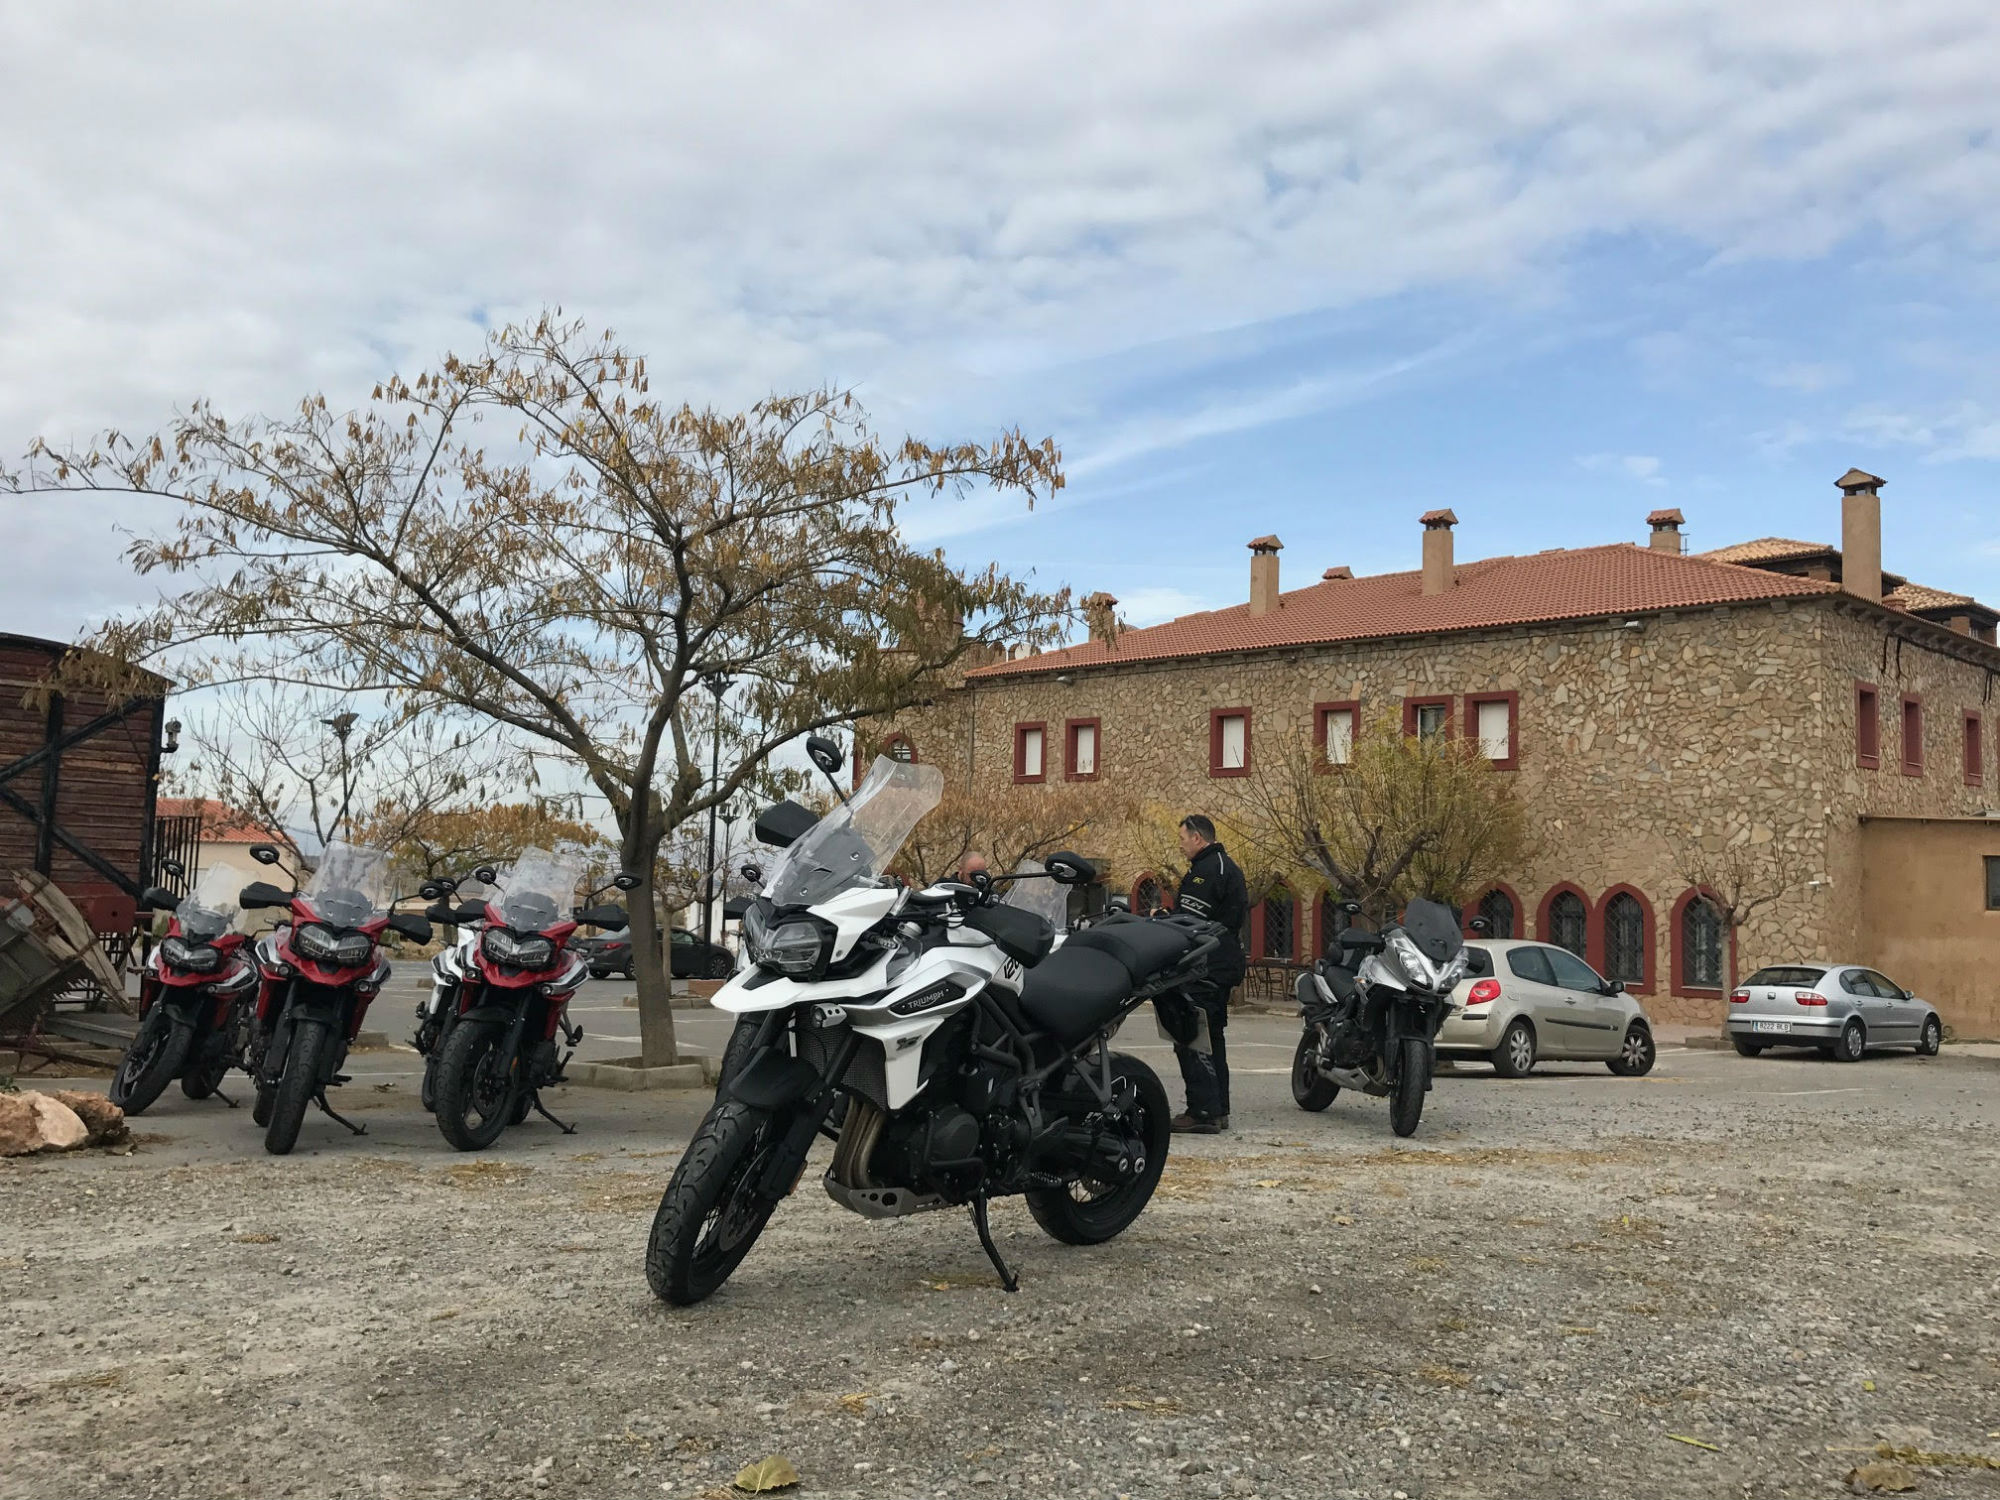 Triumph Tiger 1200 review - first impressions